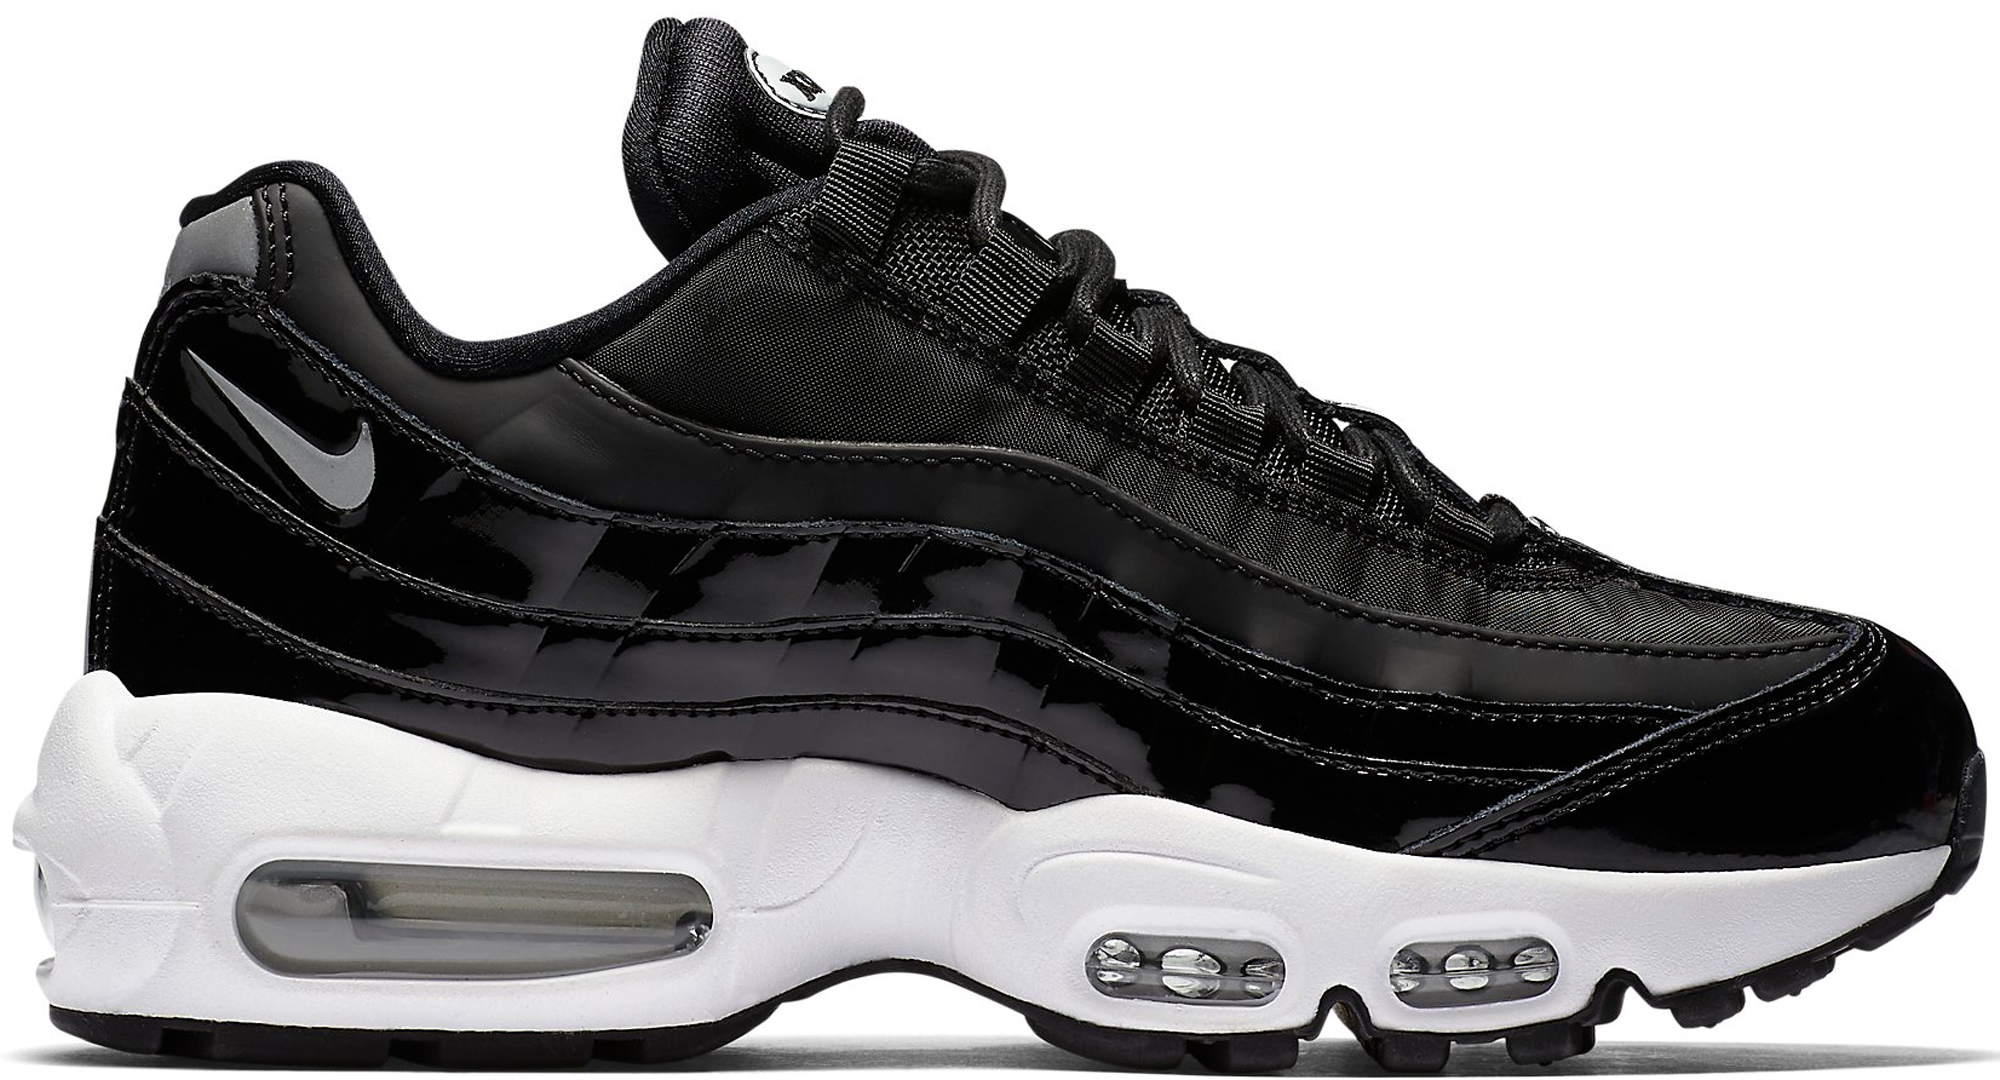 check out a8f55 48655 Women s Nike Air Max 95 Black Patent